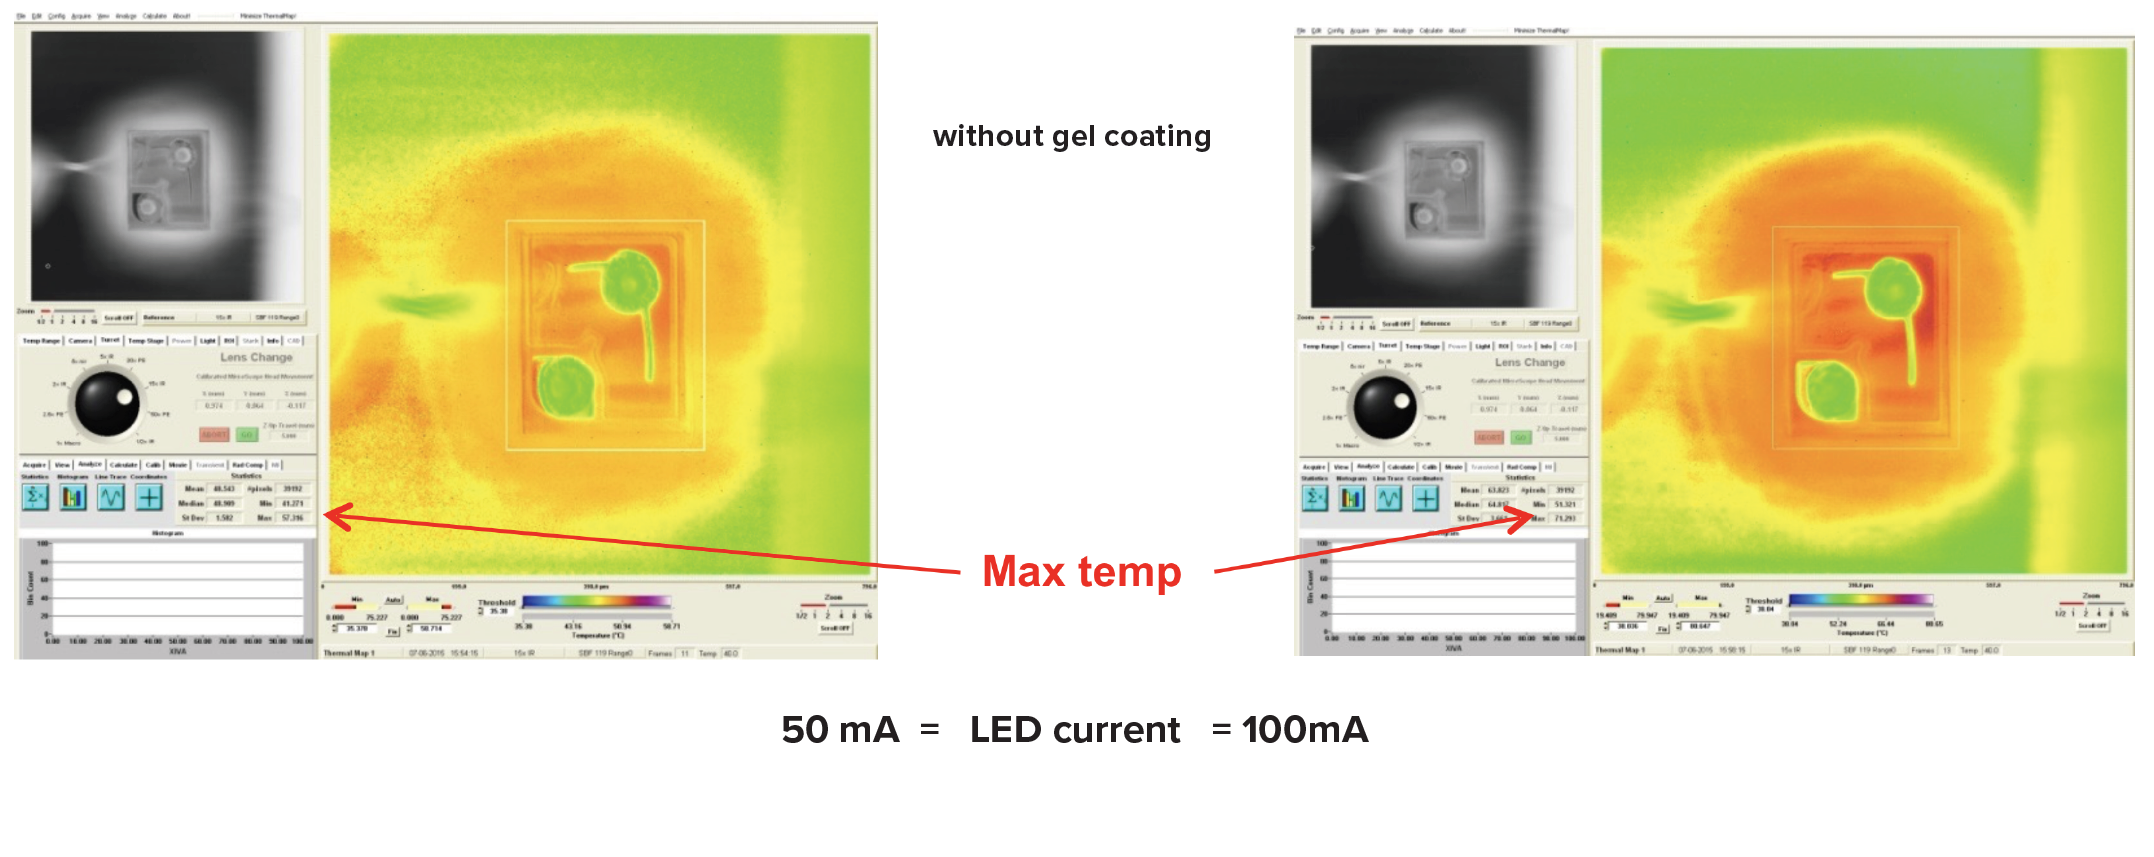 Thermal maps of LEDs as received and with the gel coating removed